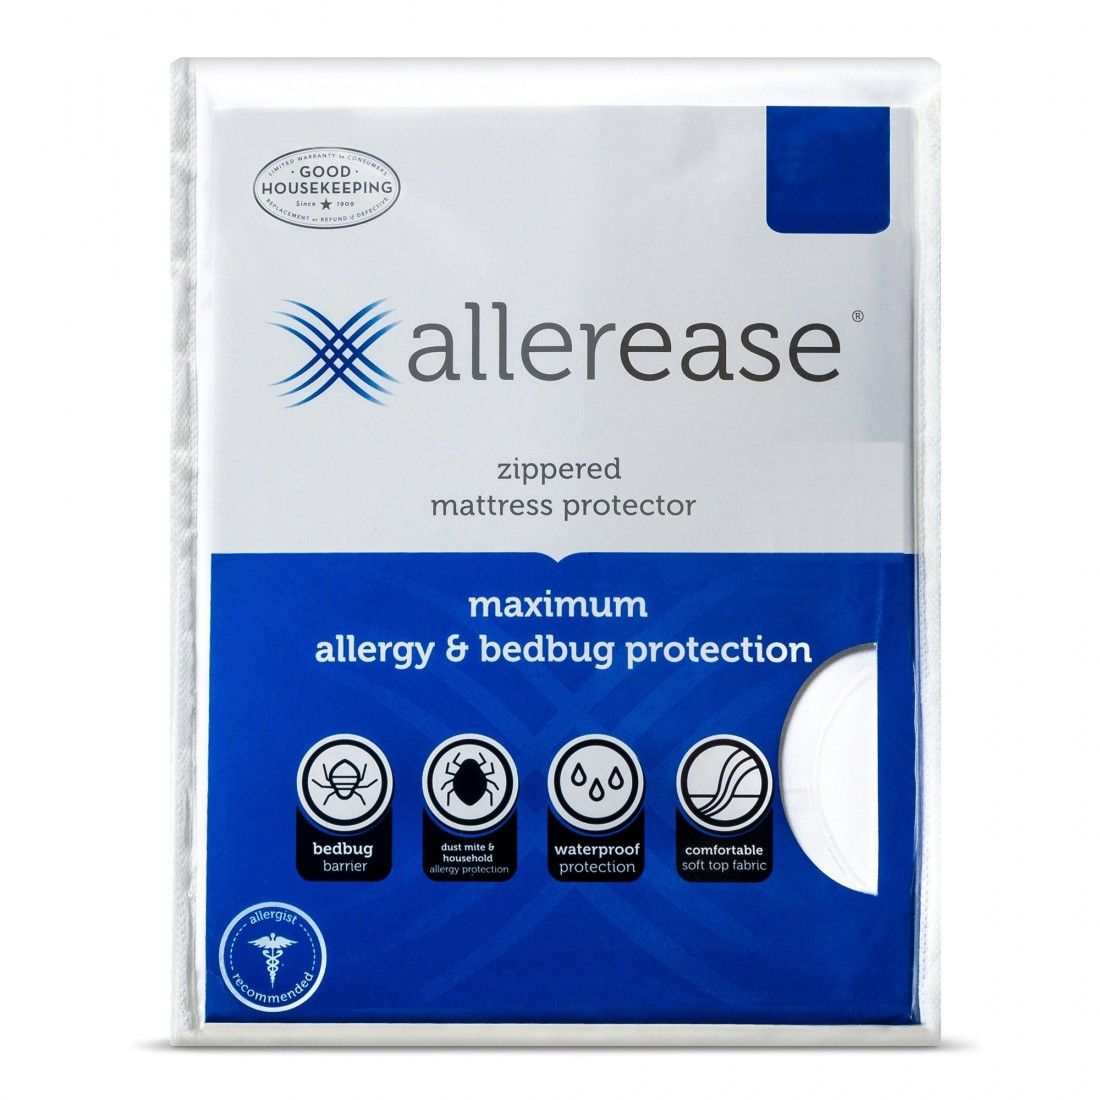 Allerease Maximum Allergy Bed Bug Zippered Mattress Protectorfr